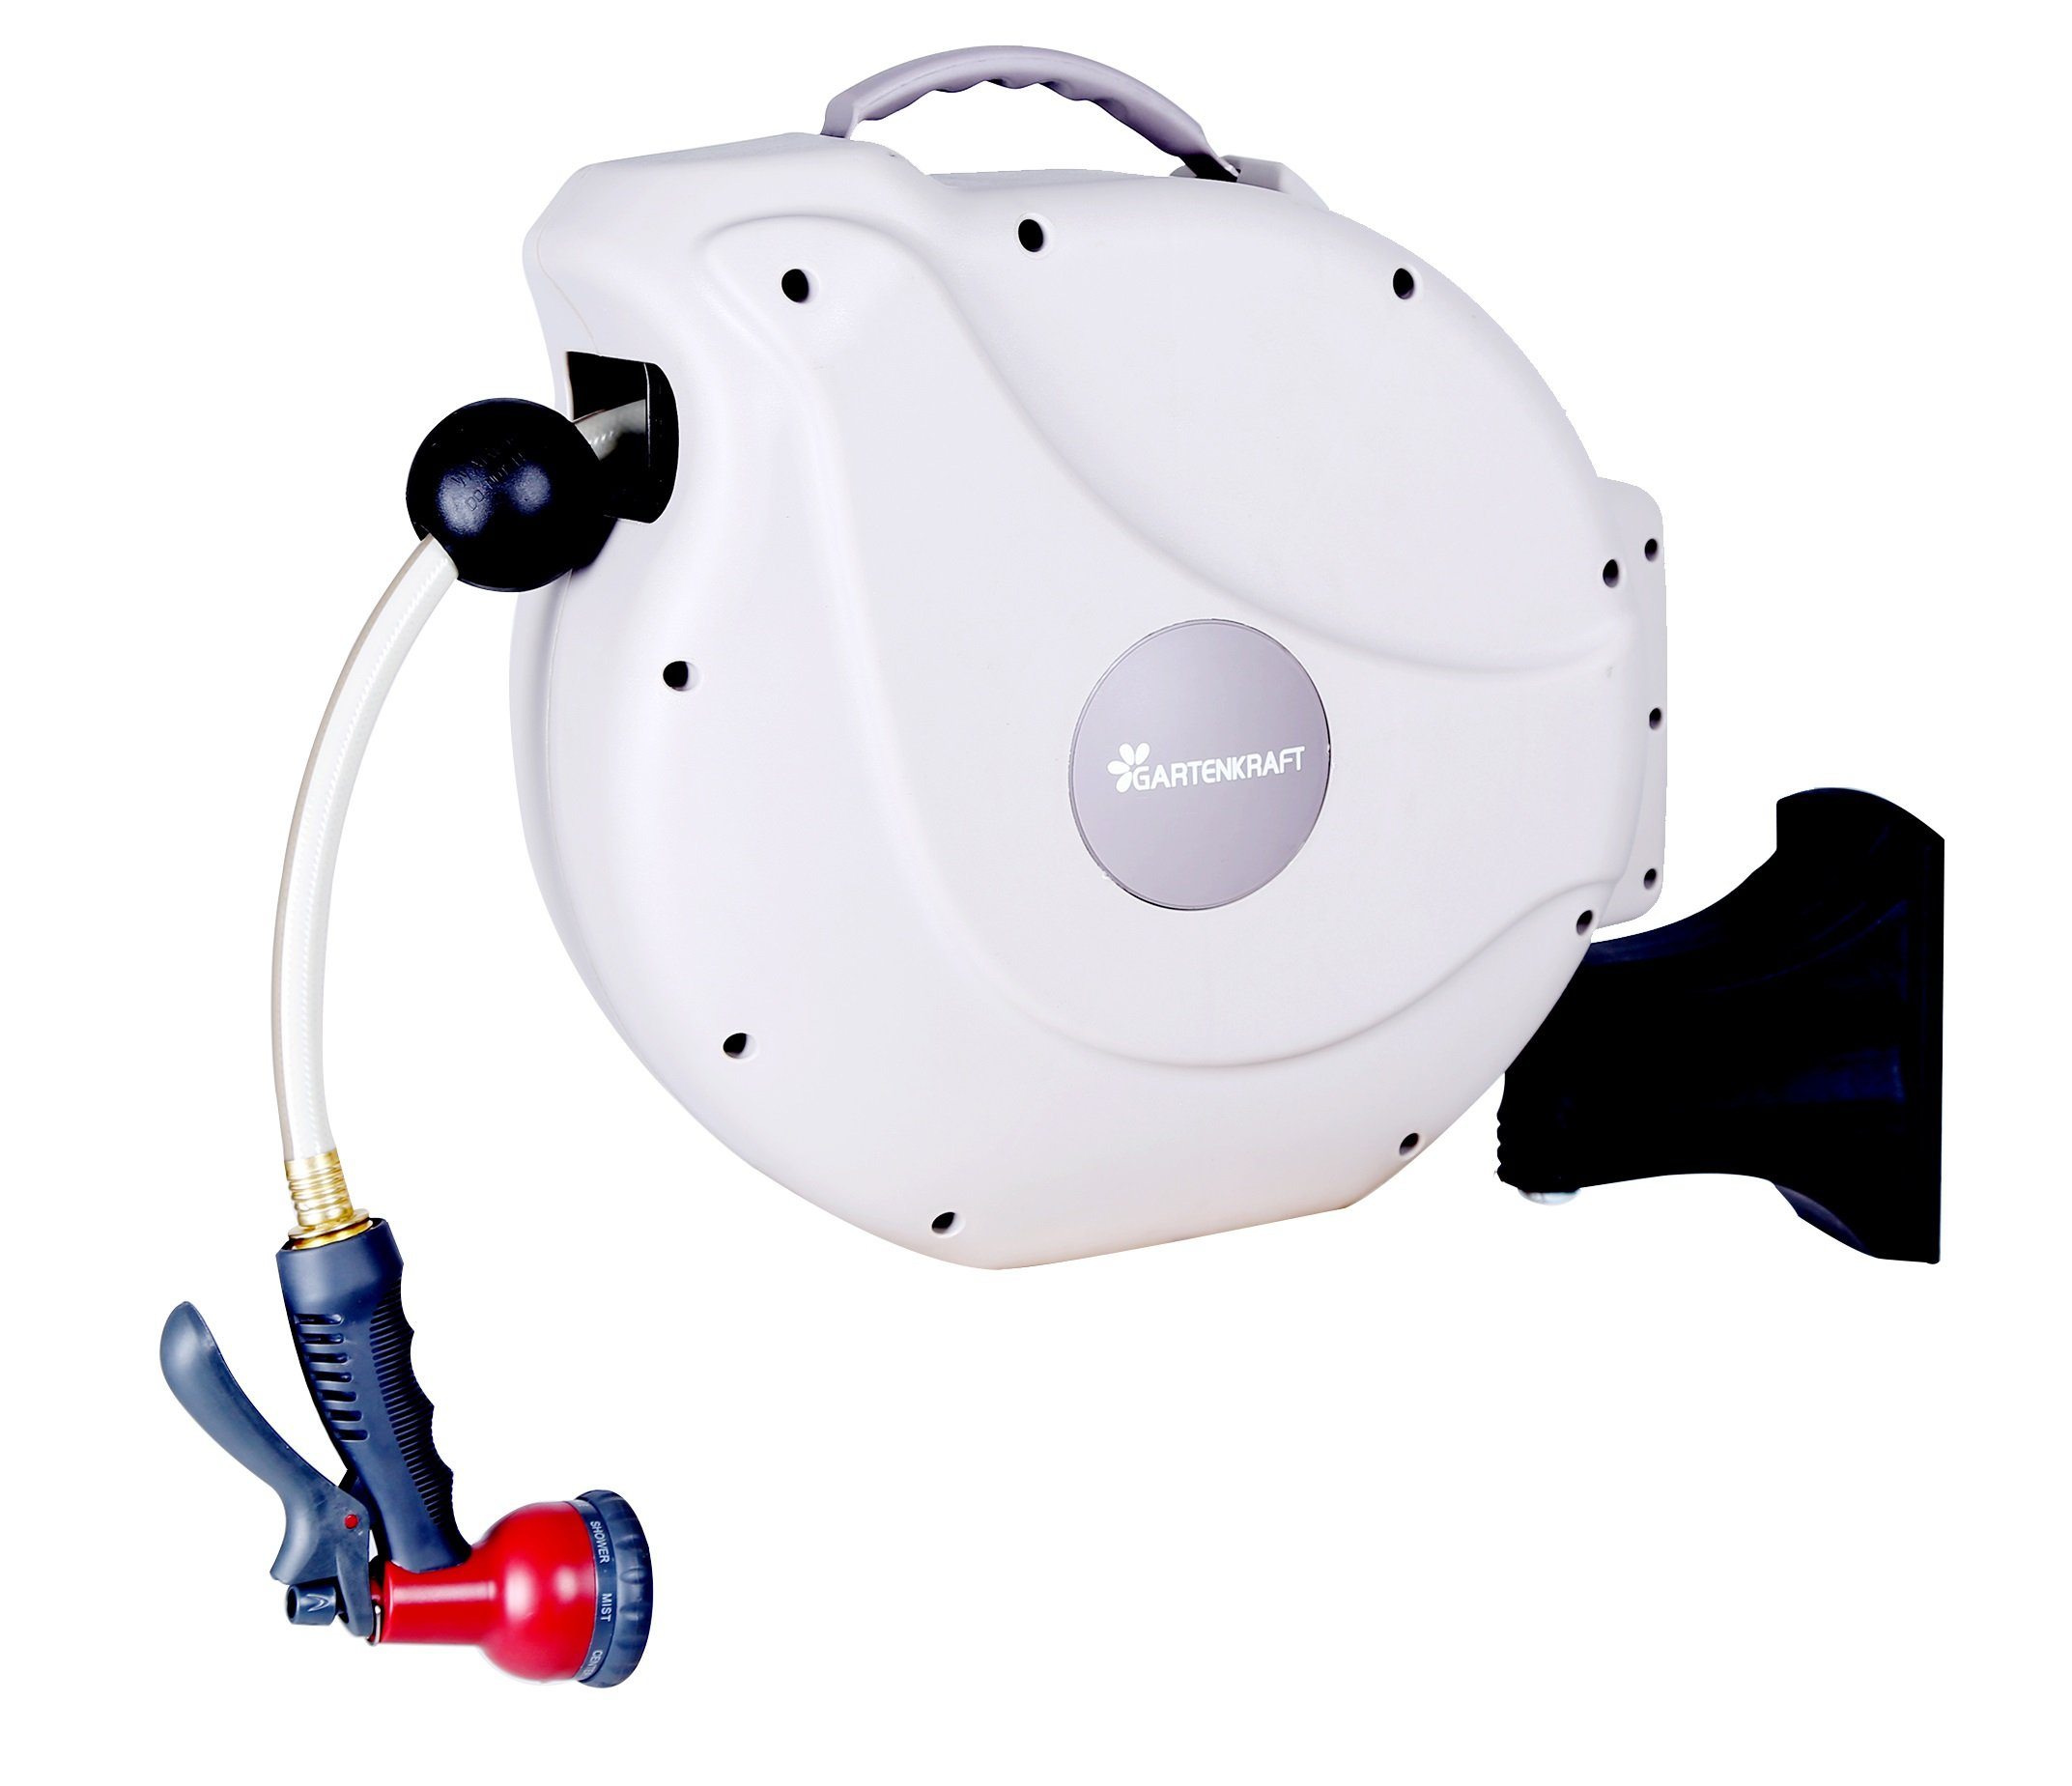 GartenKraft Retractable Garden Hose Reel, 1/2'' 100' White, 1/2'', 100'